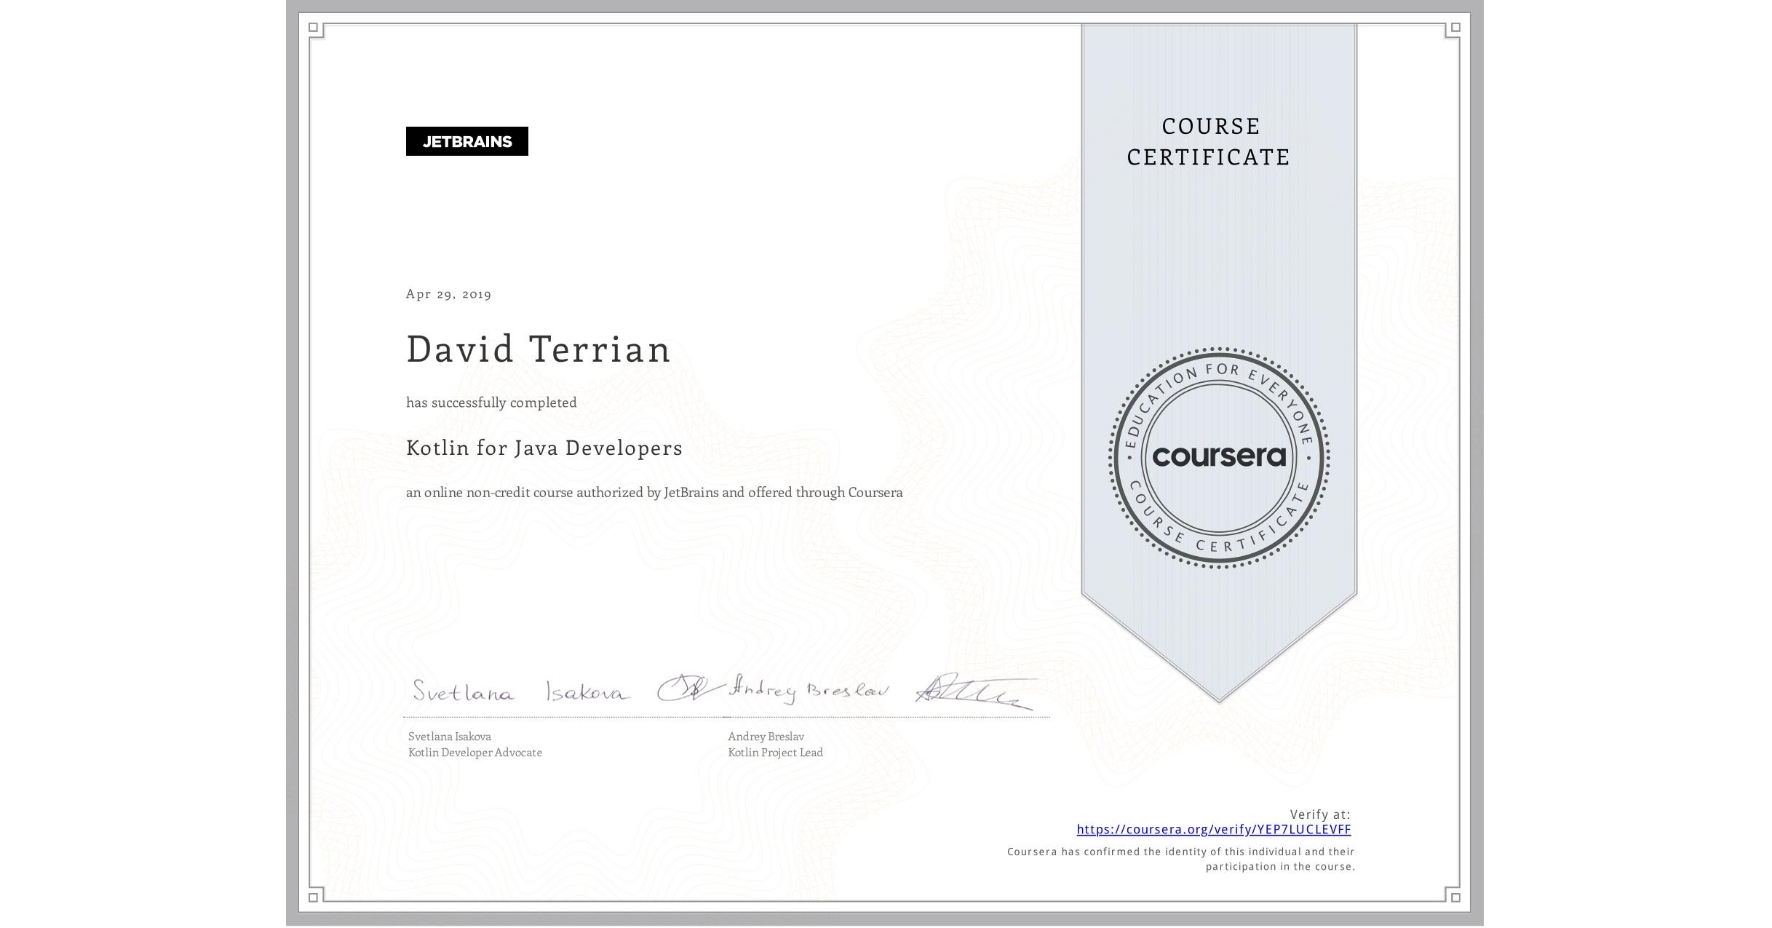 View certificate for David Terrian, Kotlin for Java Developers, an online non-credit course authorized by JetBrains and offered through Coursera